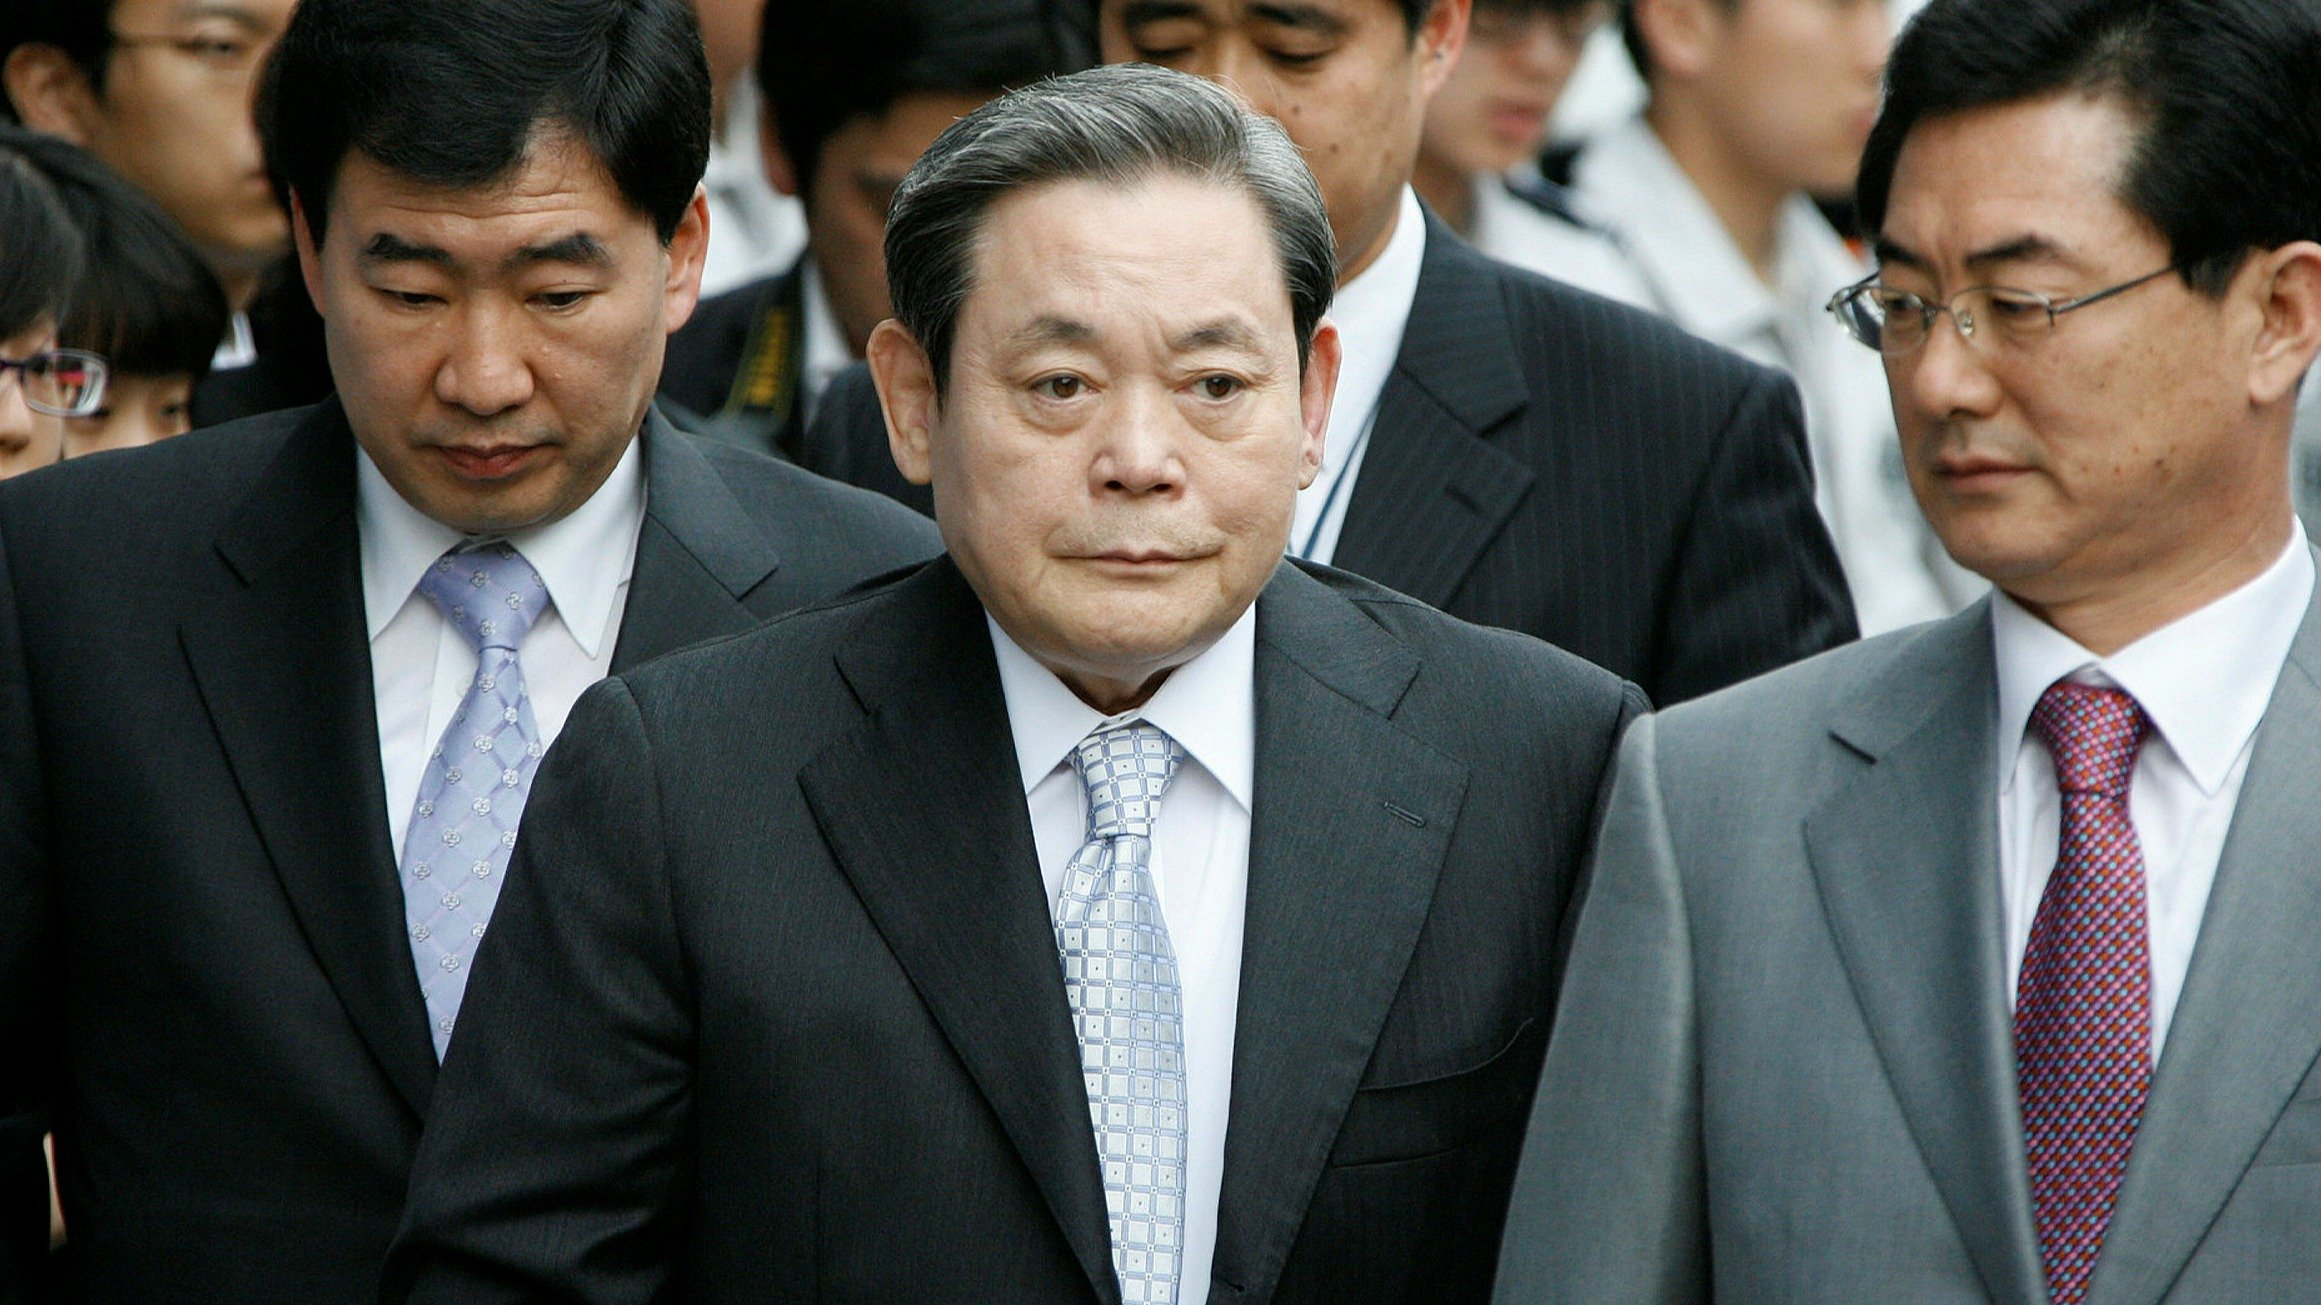 Samsung's Former Chairman's Family is Paying $10.8 Billion in Tax